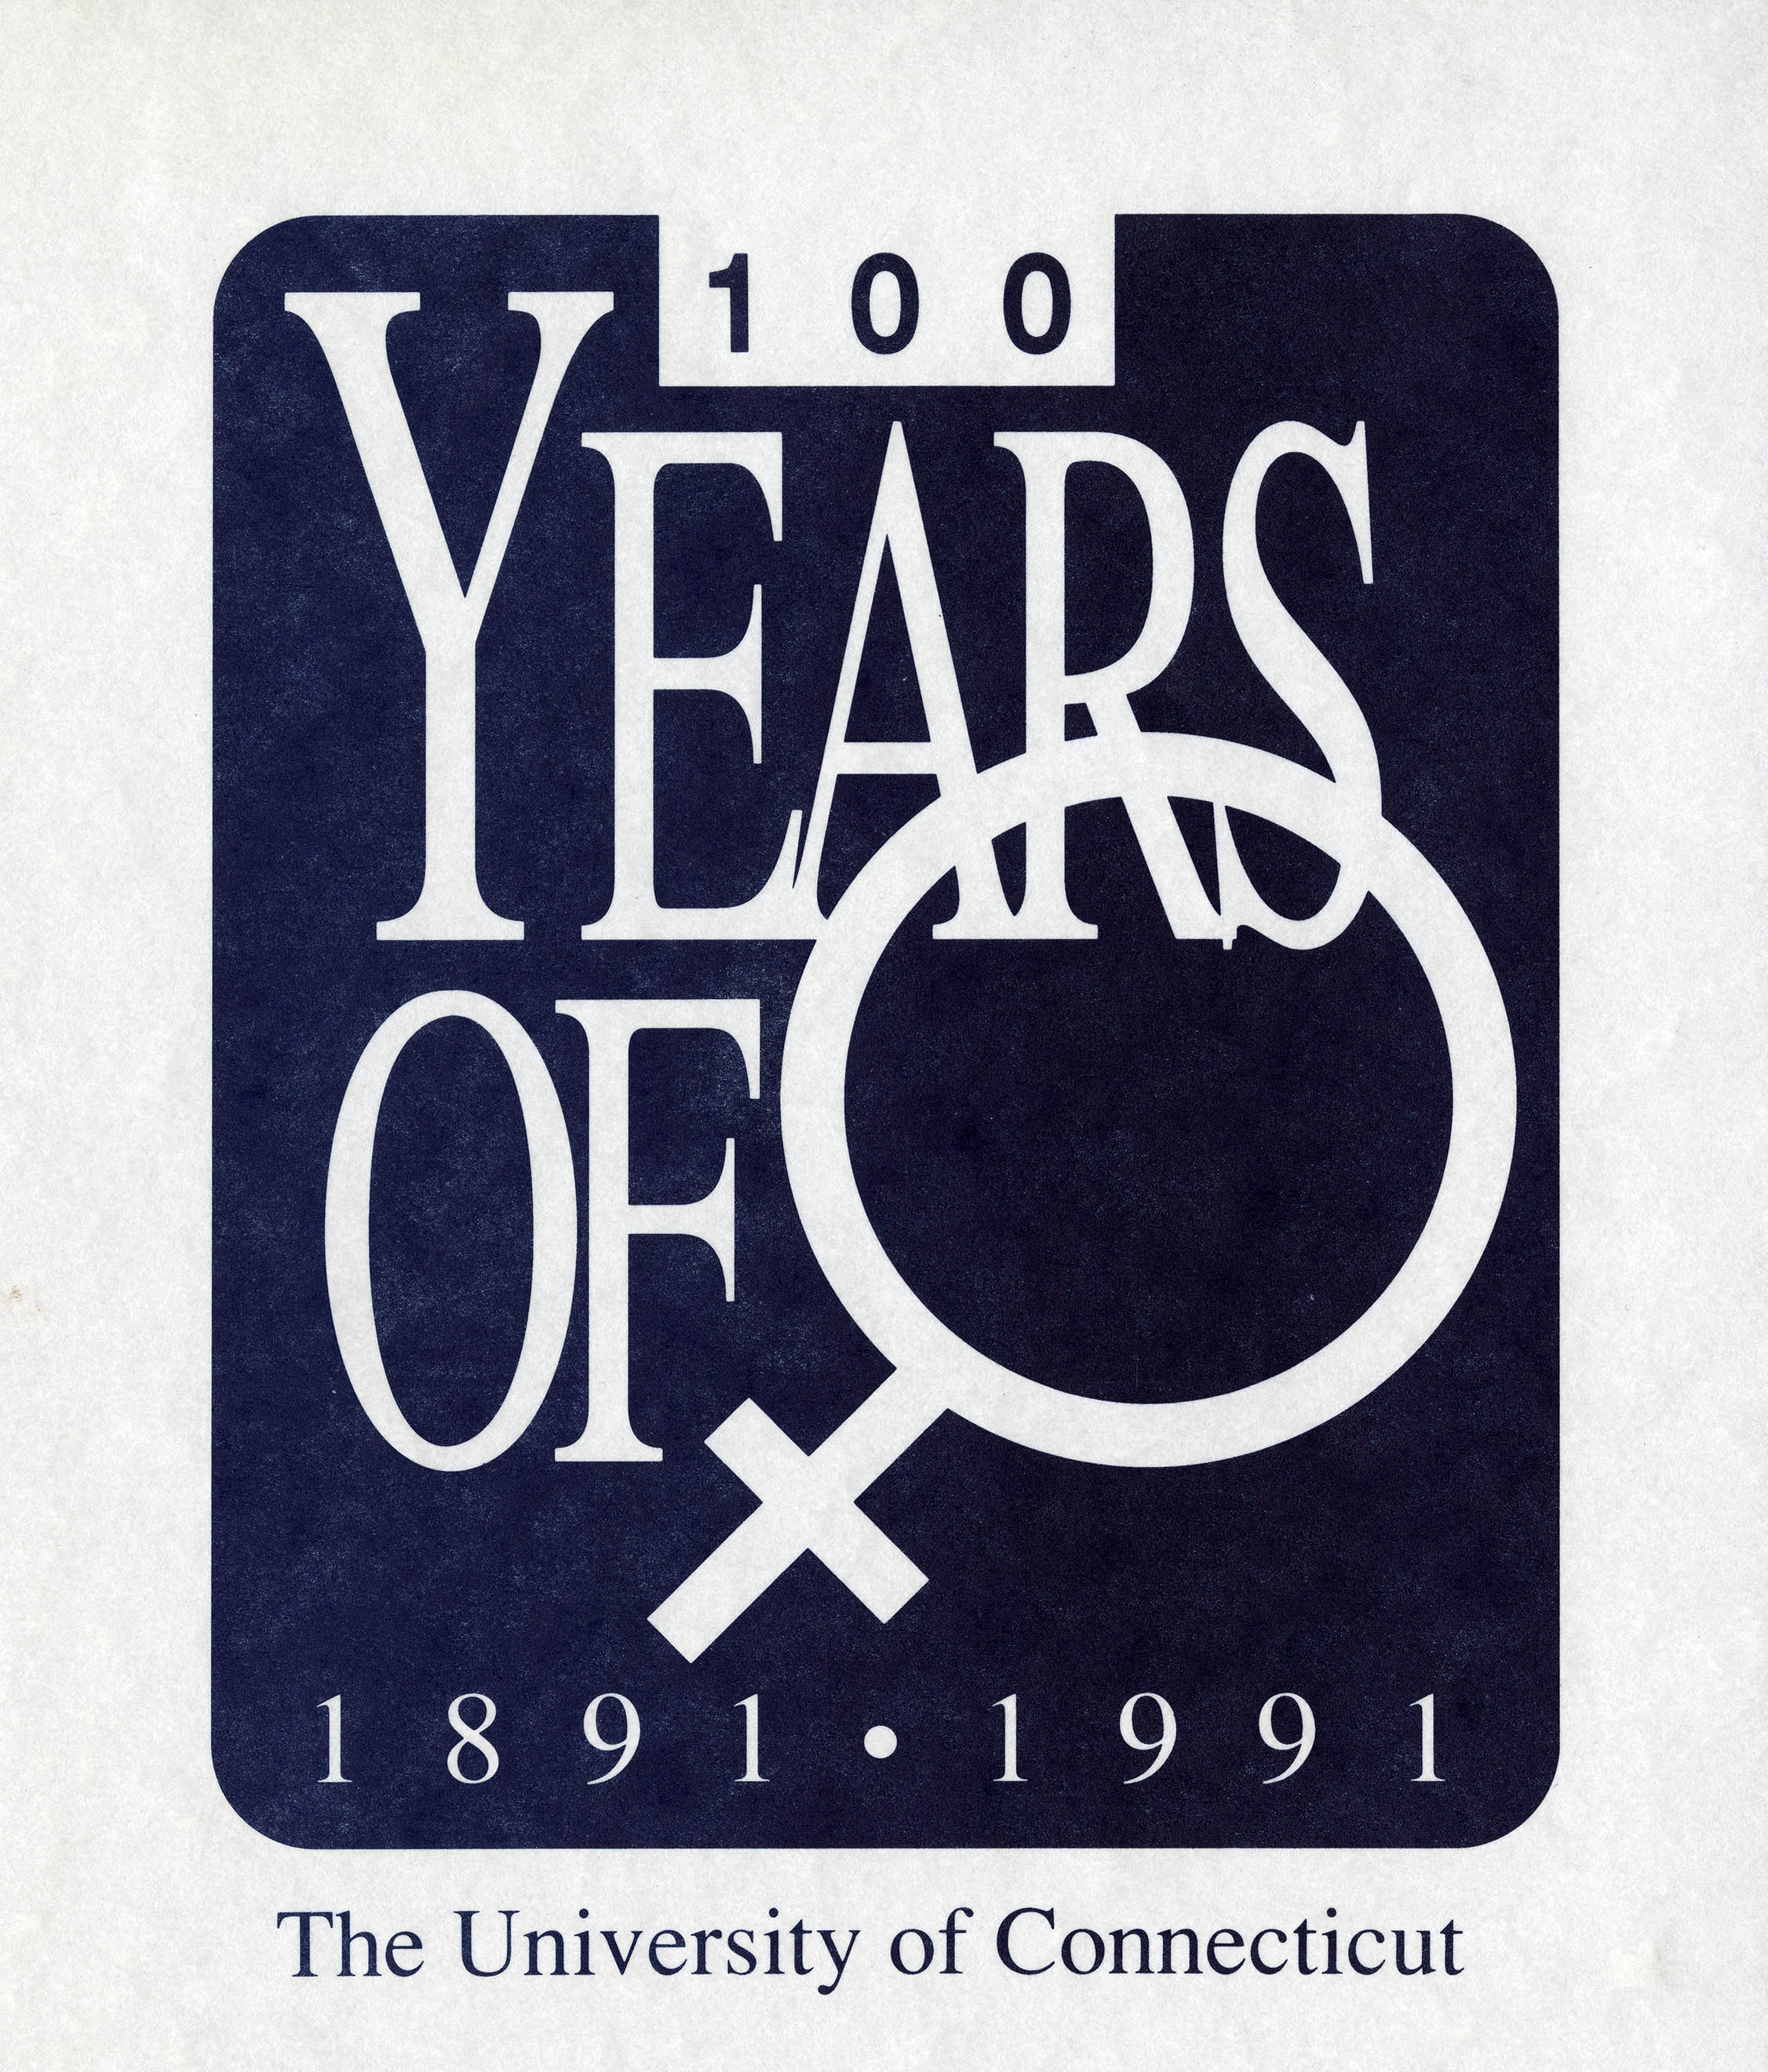 100 Years of Women at UConn (1891-1991)